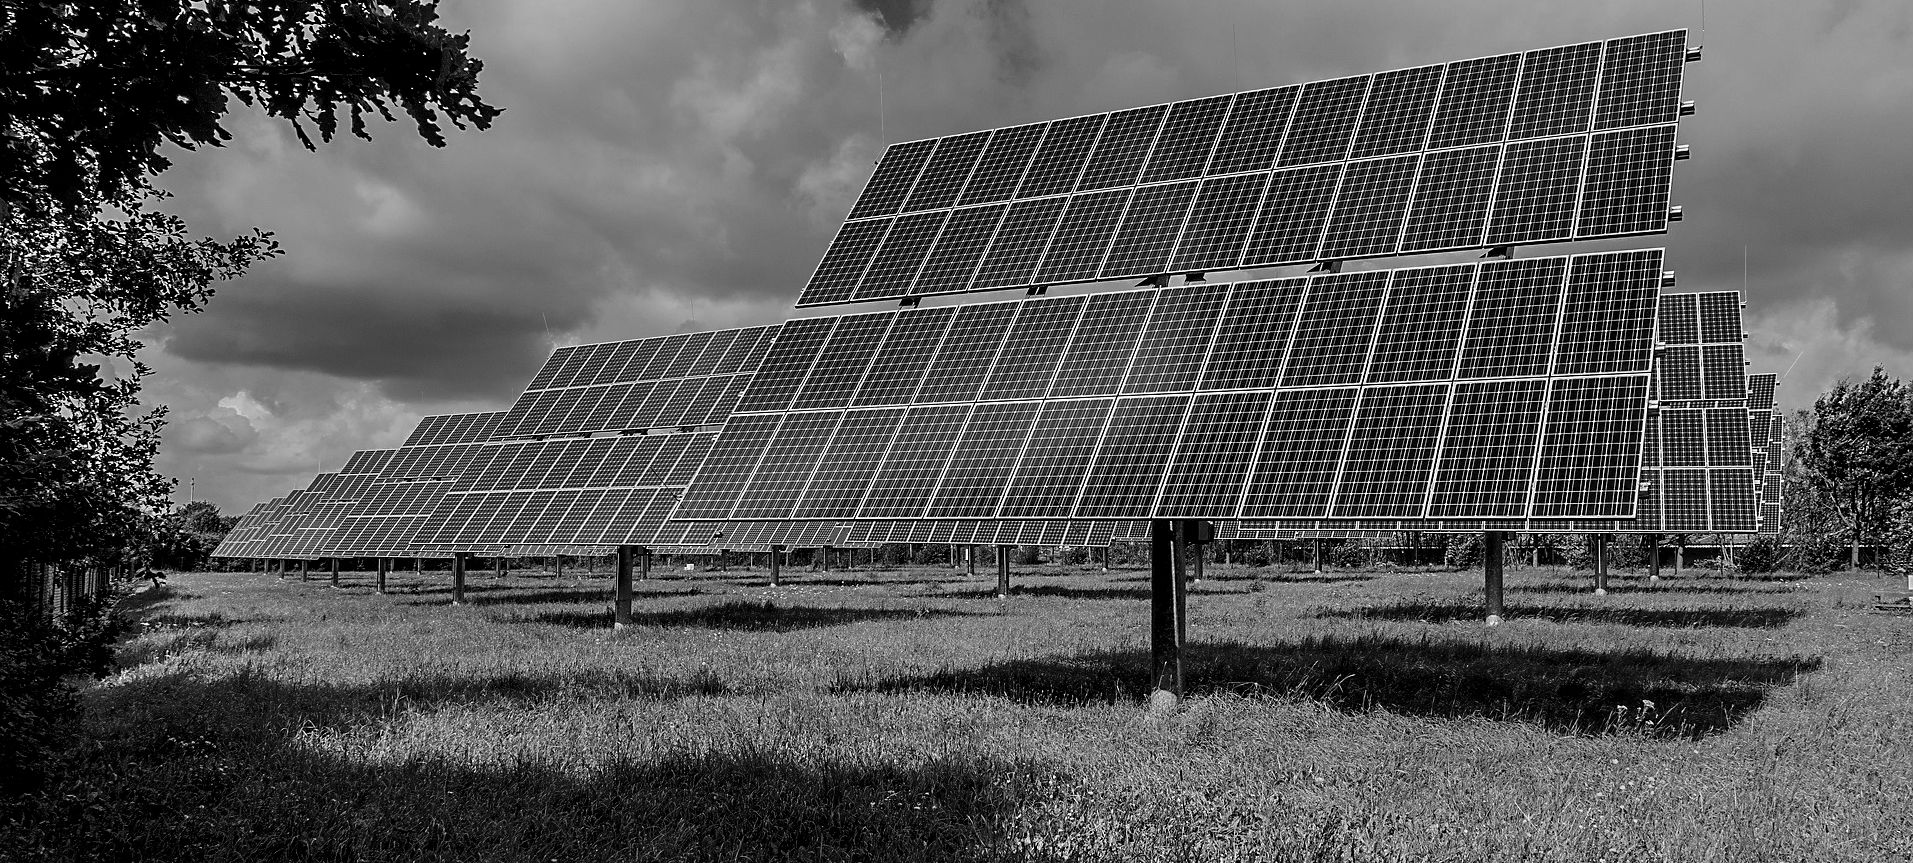 photovoltaic-system-2742302_1920.jpg